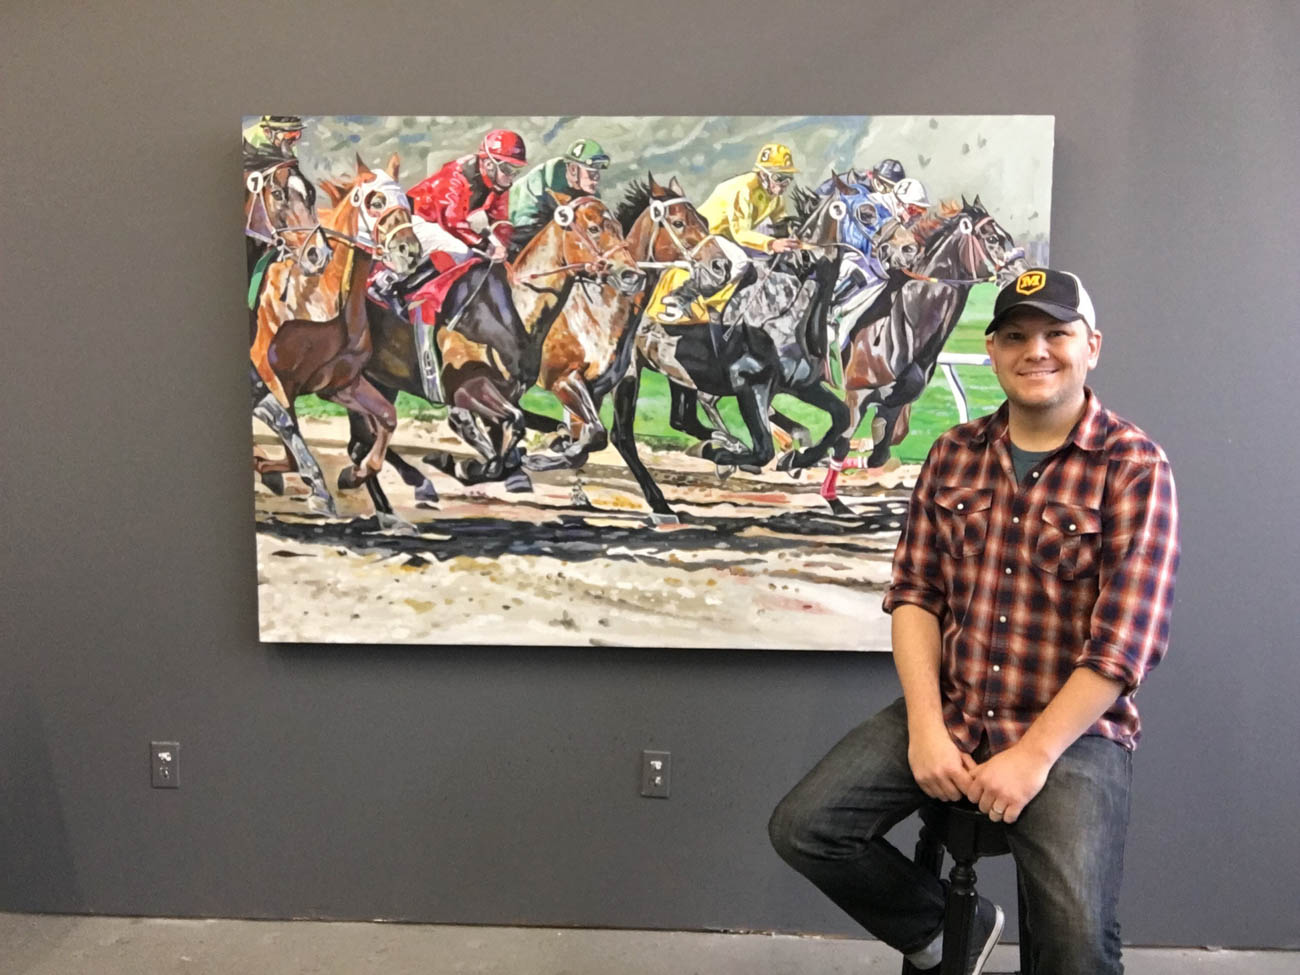 'Horse Race' is Tony's largest painting to-date. It took him 150 hours to complete. / Image courtesy of Tony Lipps // Published: 2.16.20